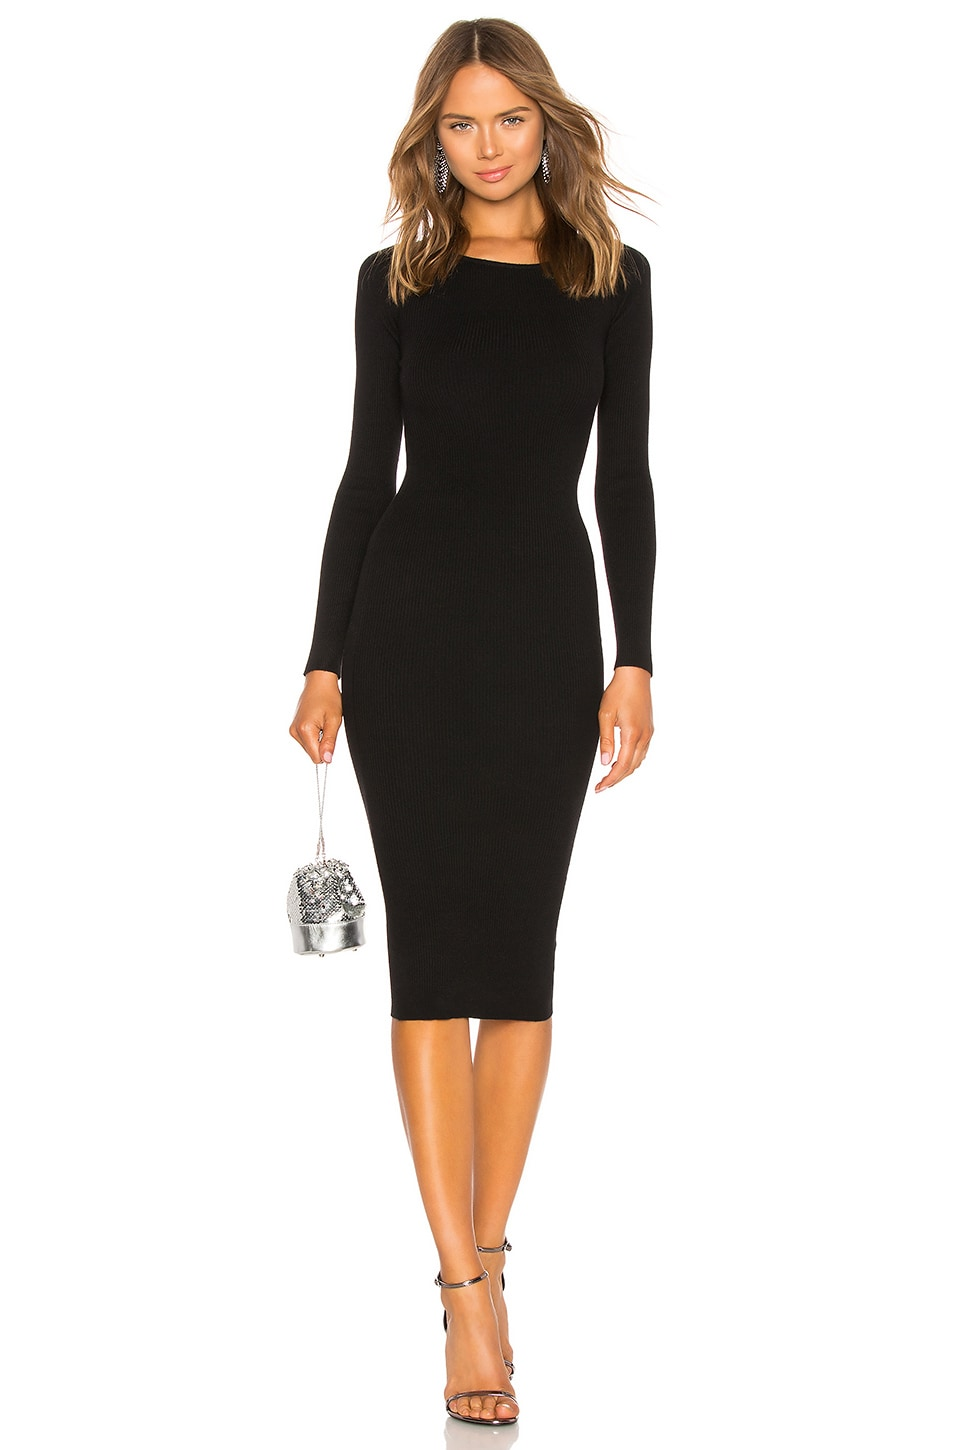 LPA Auburn Sweater Dress in Black